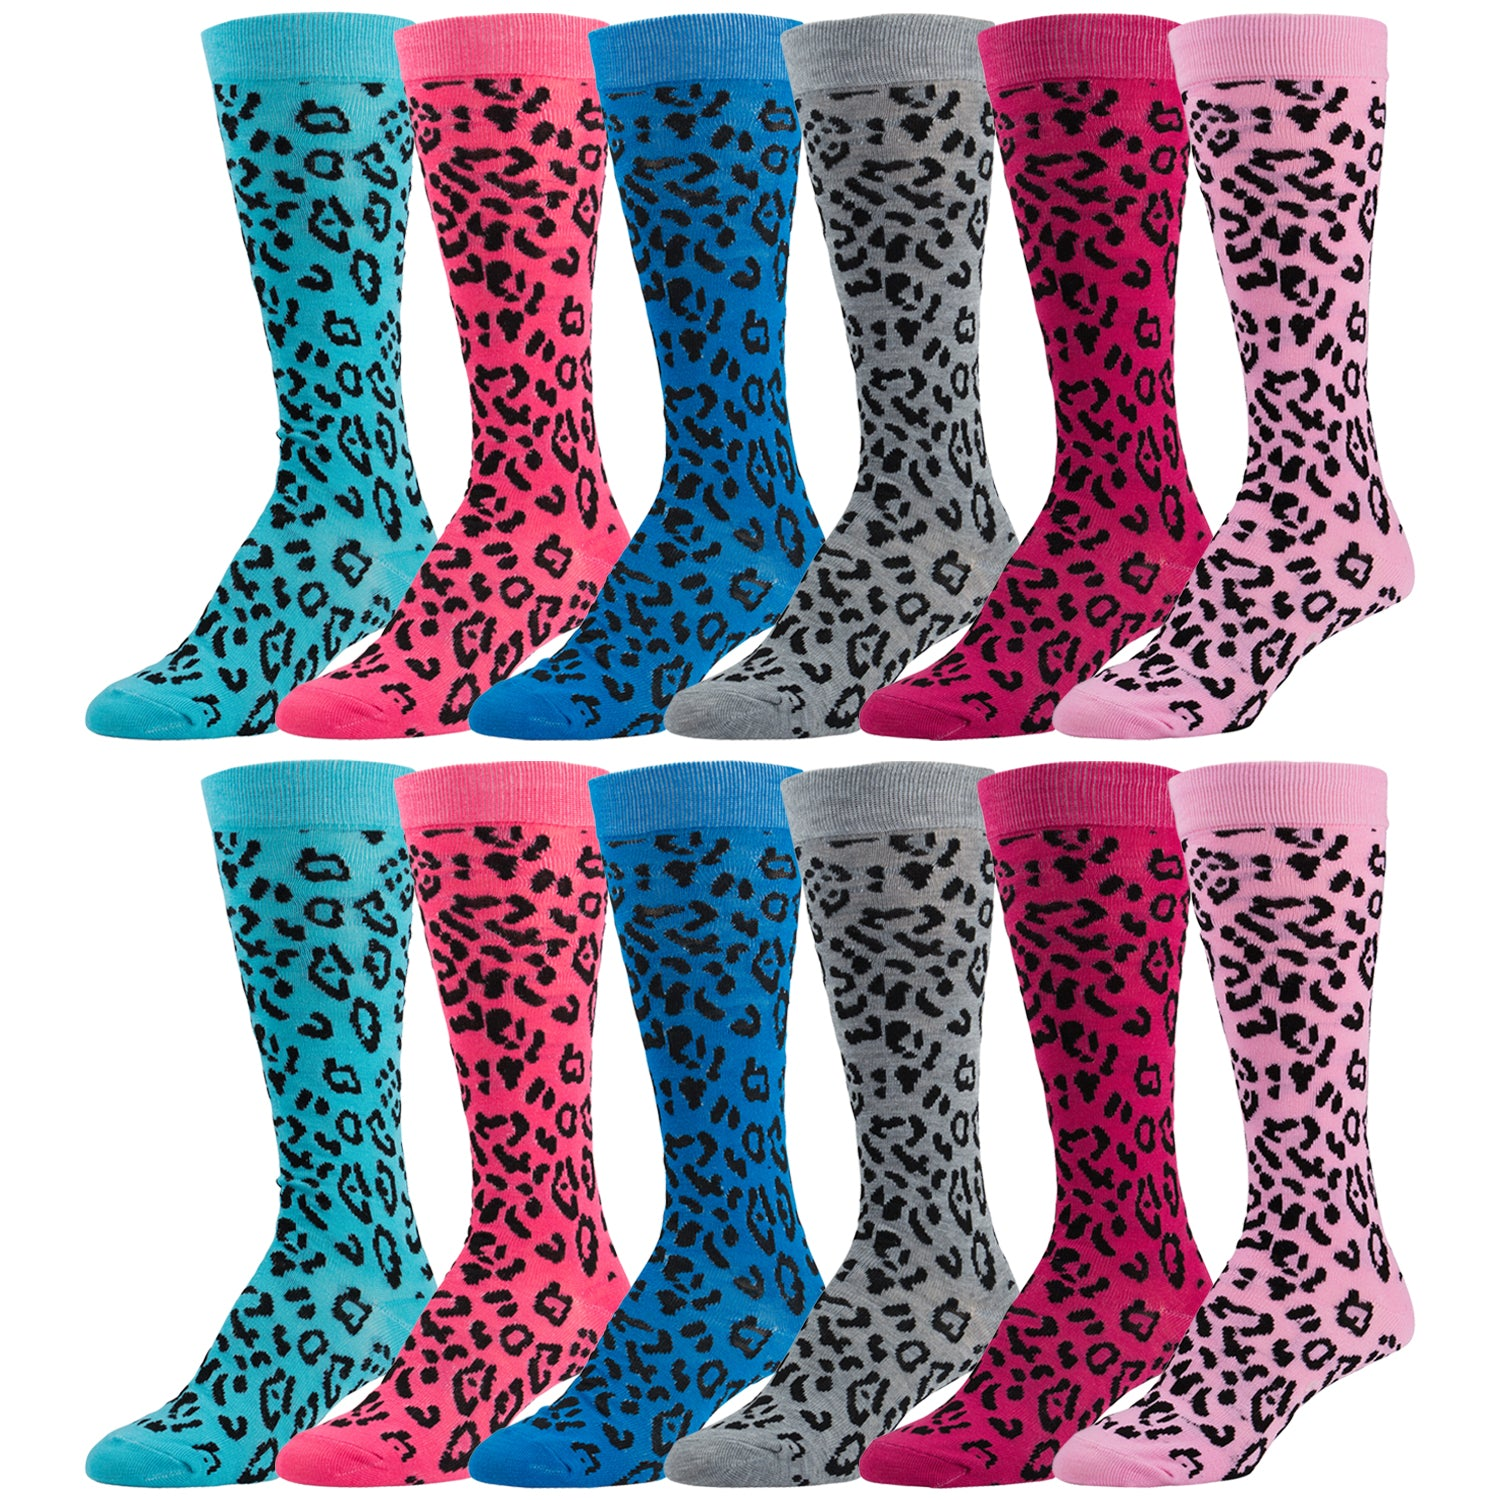 12 Pairs of Colorful Leopard Printed Knee High Socks